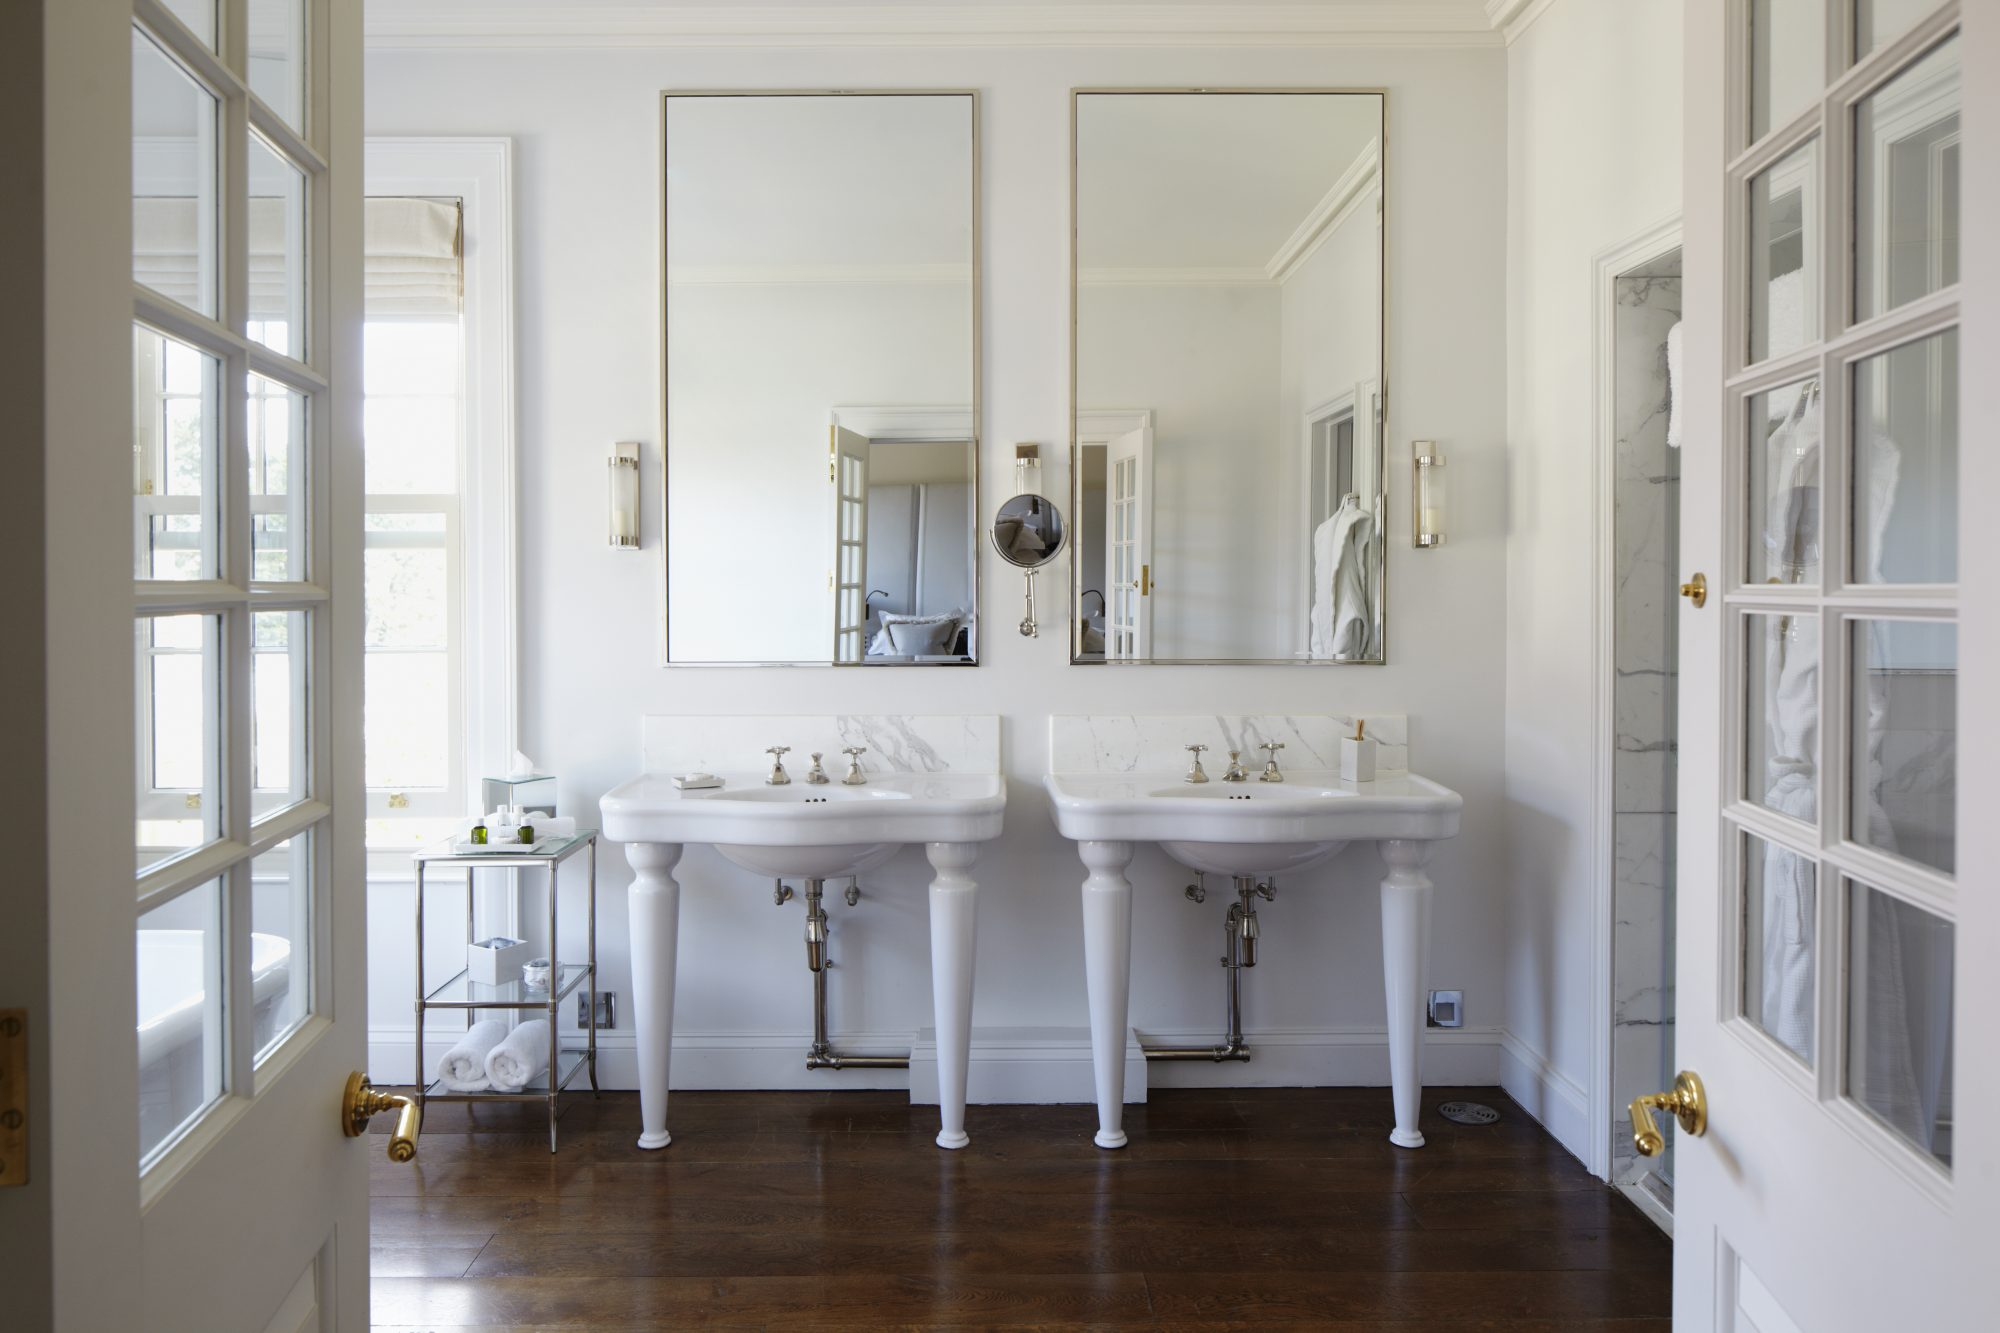 Never Make This Mistake When Painting Your Bathroom - Southern Living